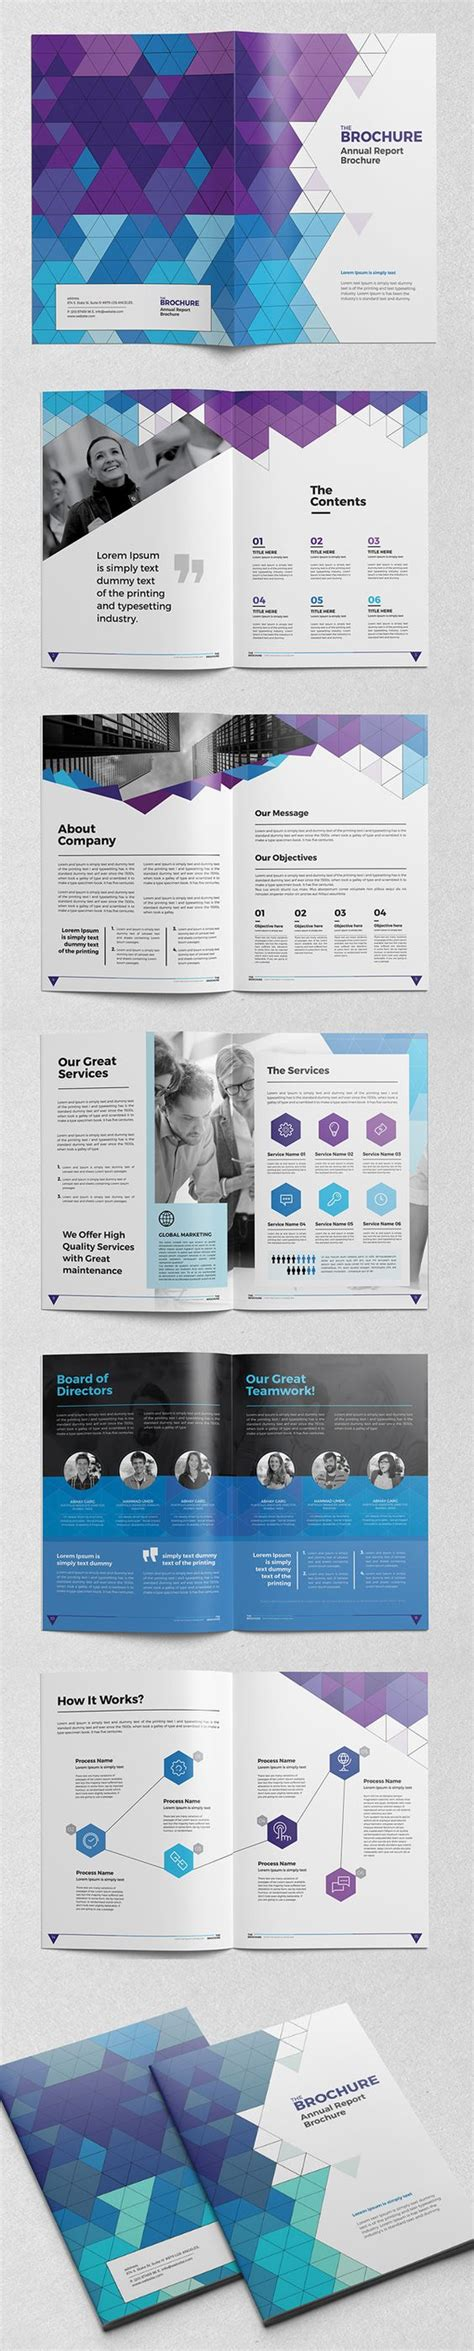 brochure indesign templates abstract brochure catalog indesign template booklet